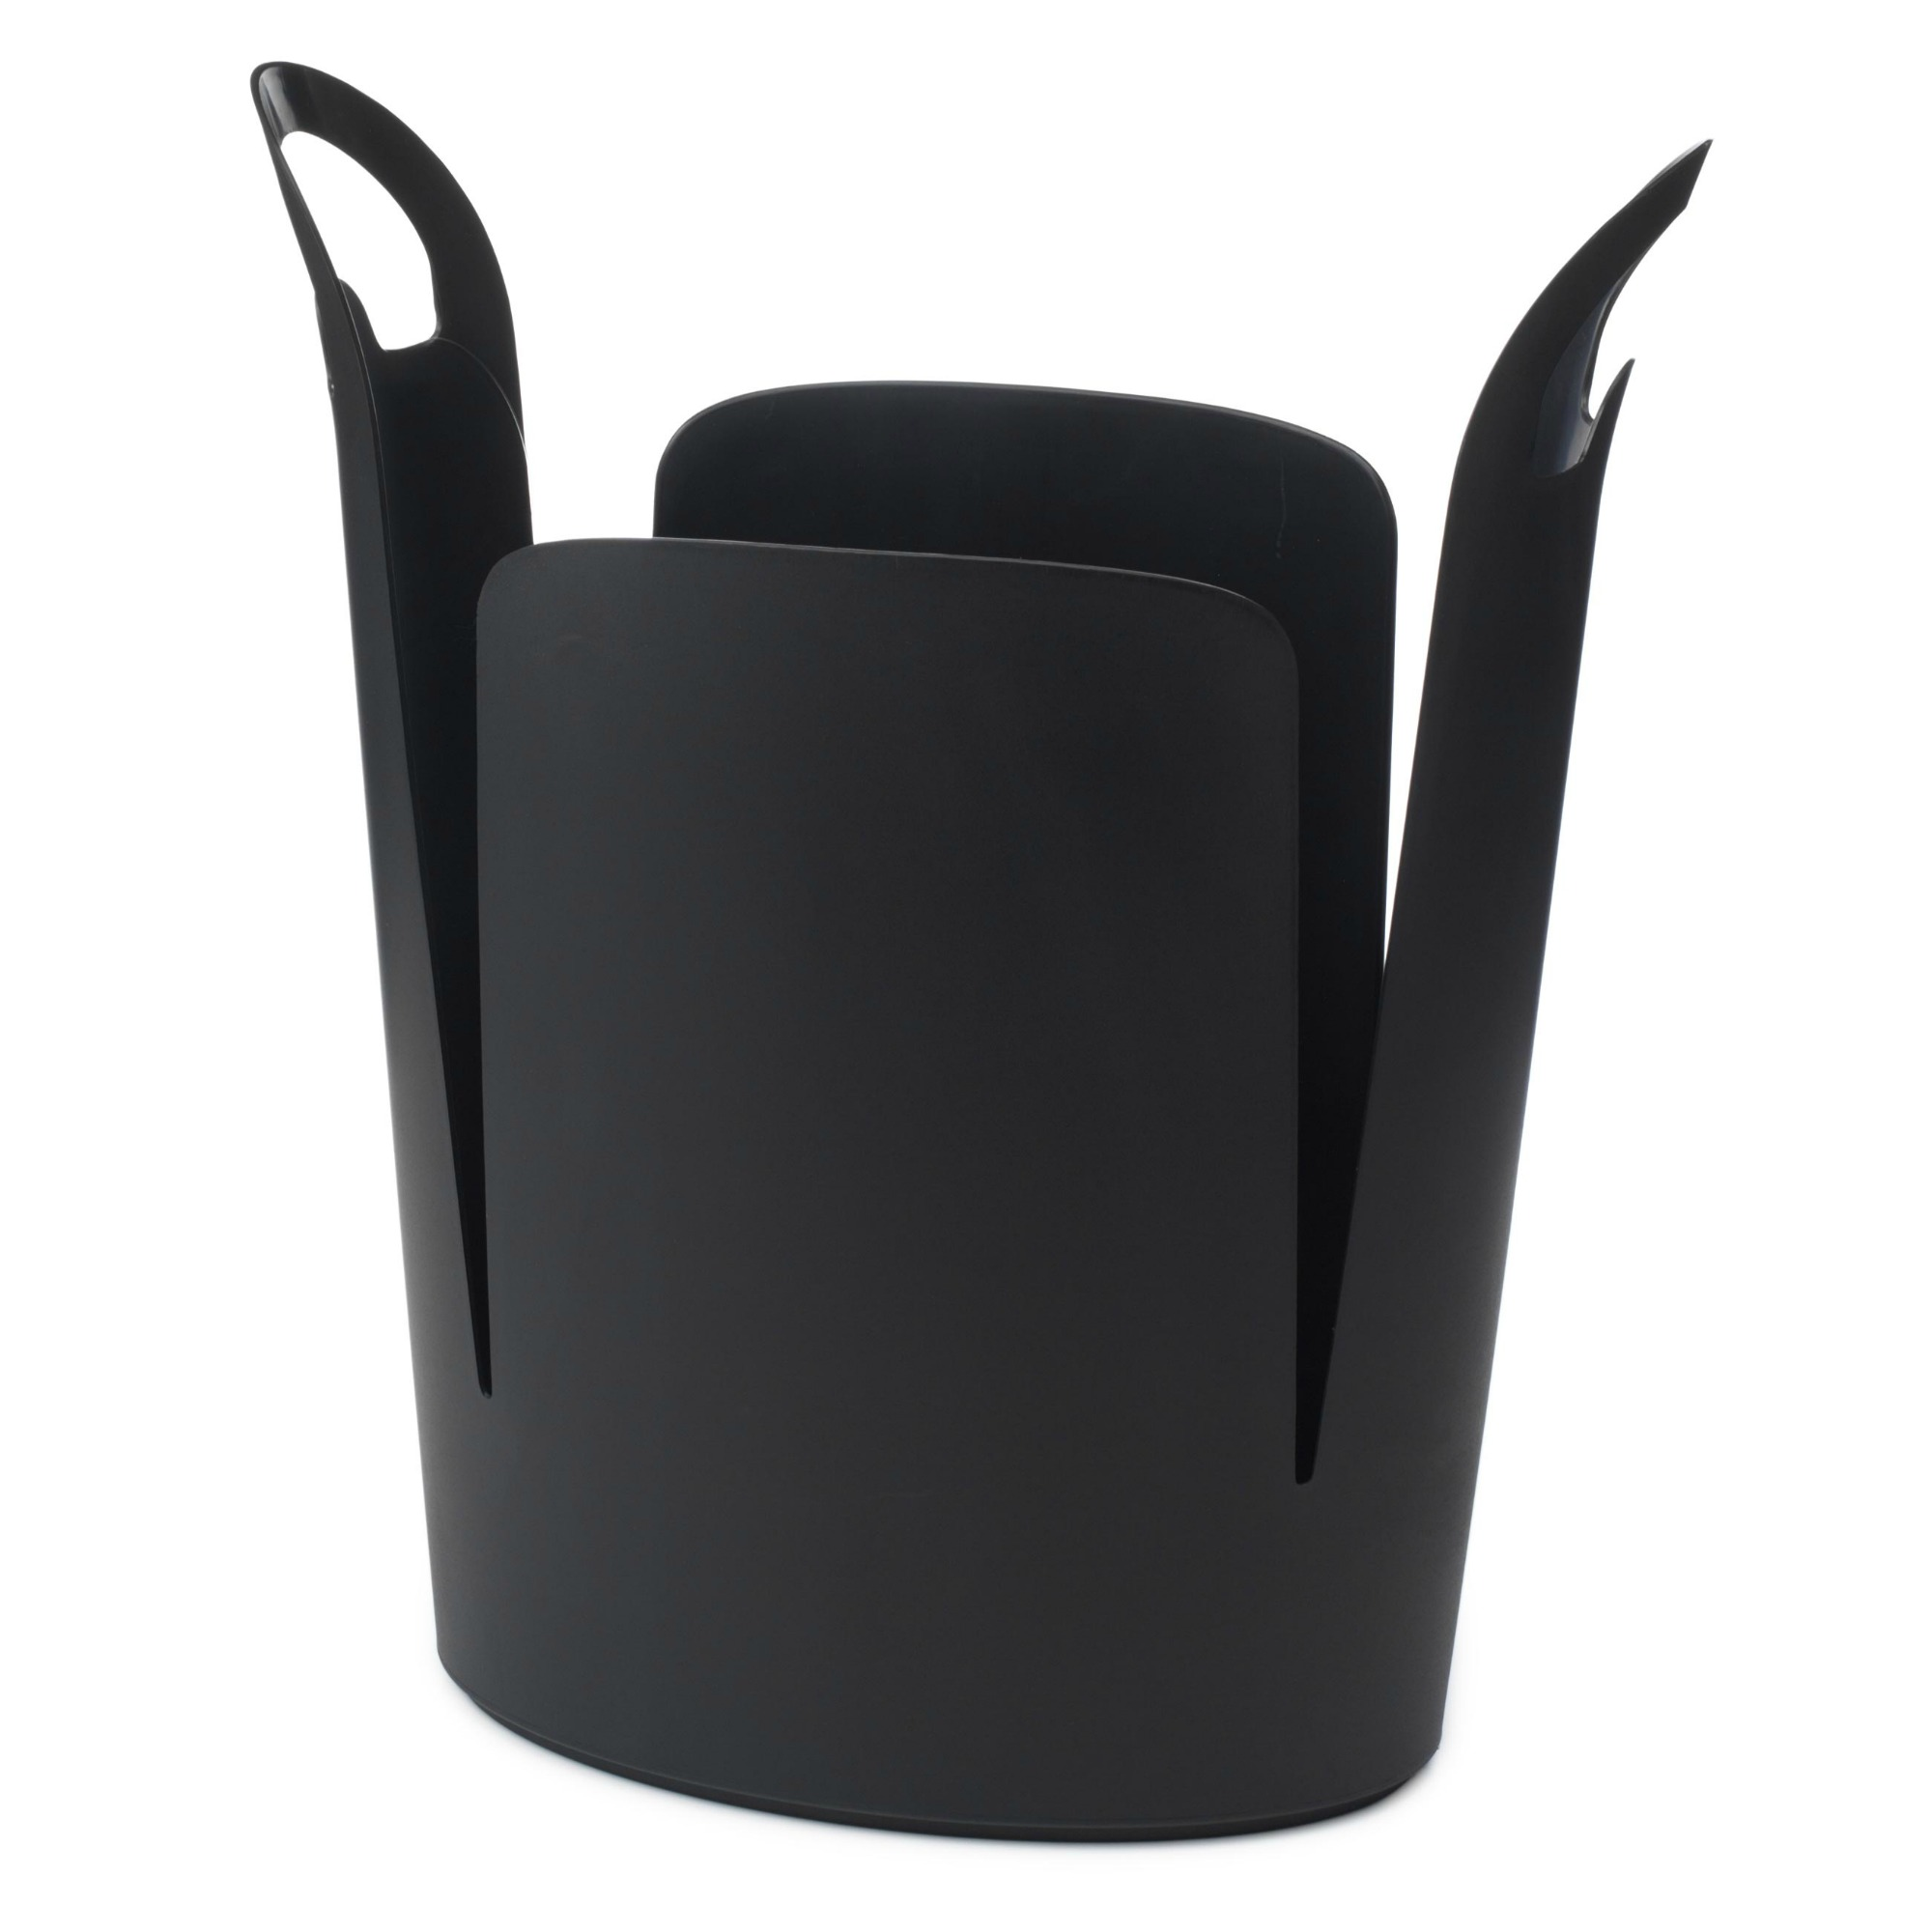 Urbano Eco Trash Can | UncommonGoods